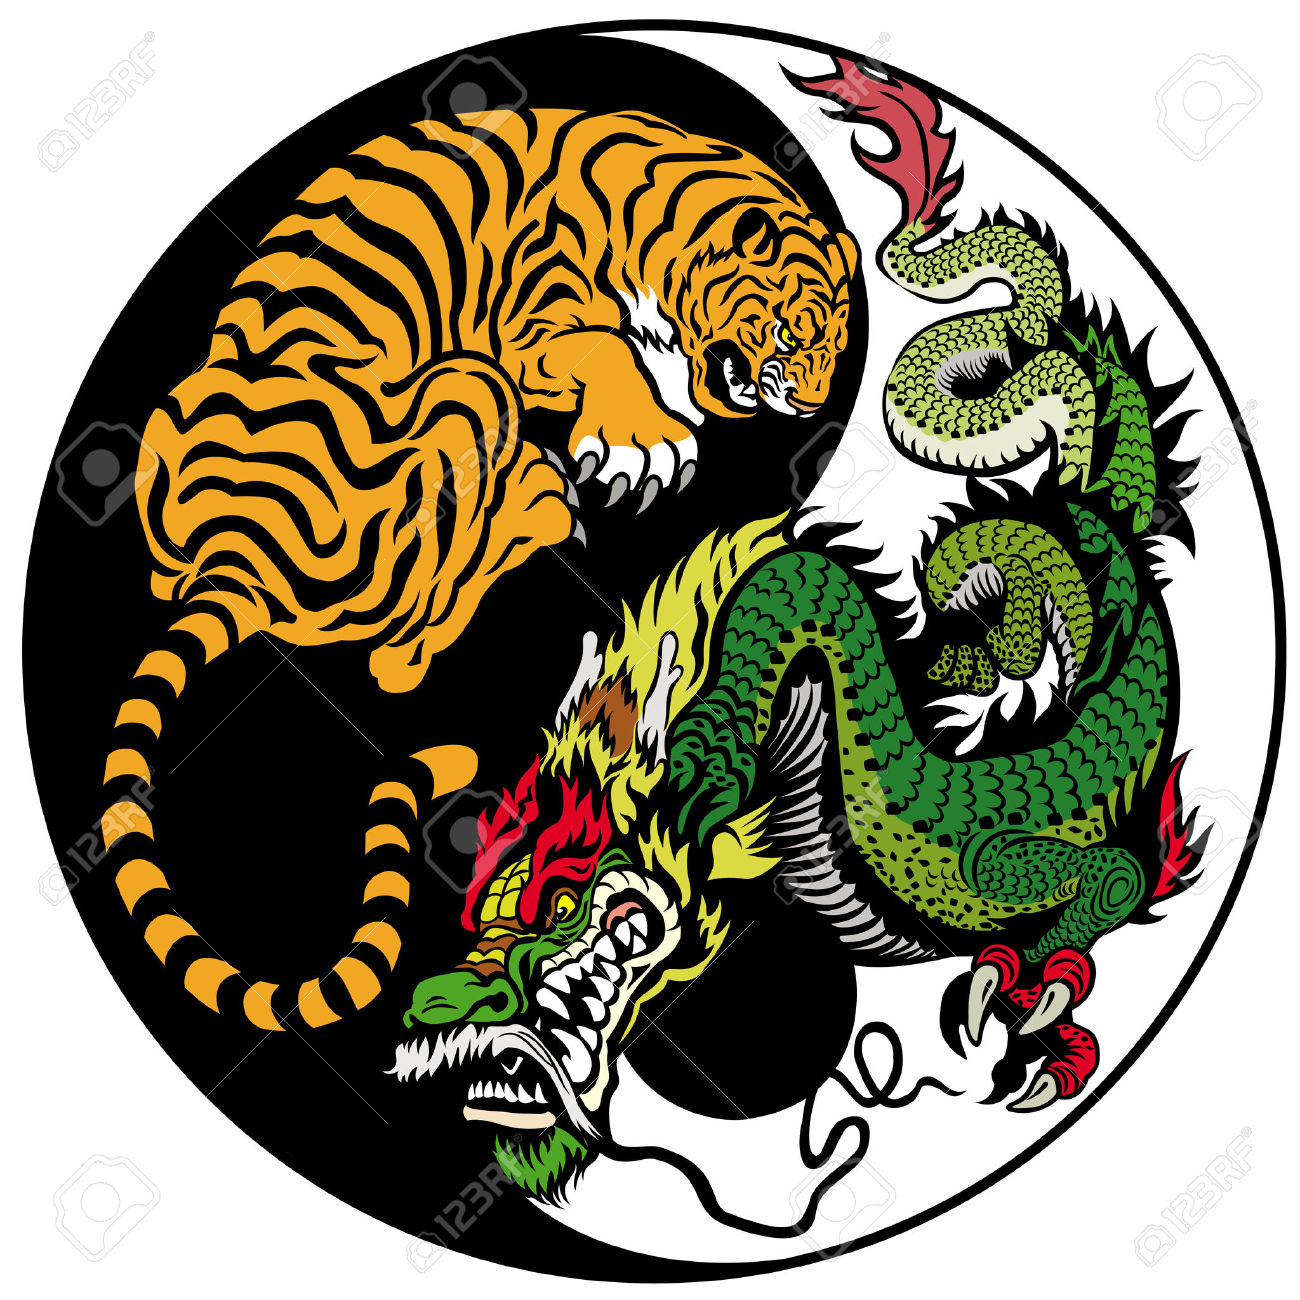 http://previews.123rf.com/images/insima/insima1311/insima131100013/24019088-dragon-and-tiger-yin-yang-symbol-of-harmony-and-balance-Stock-Vector.jpg